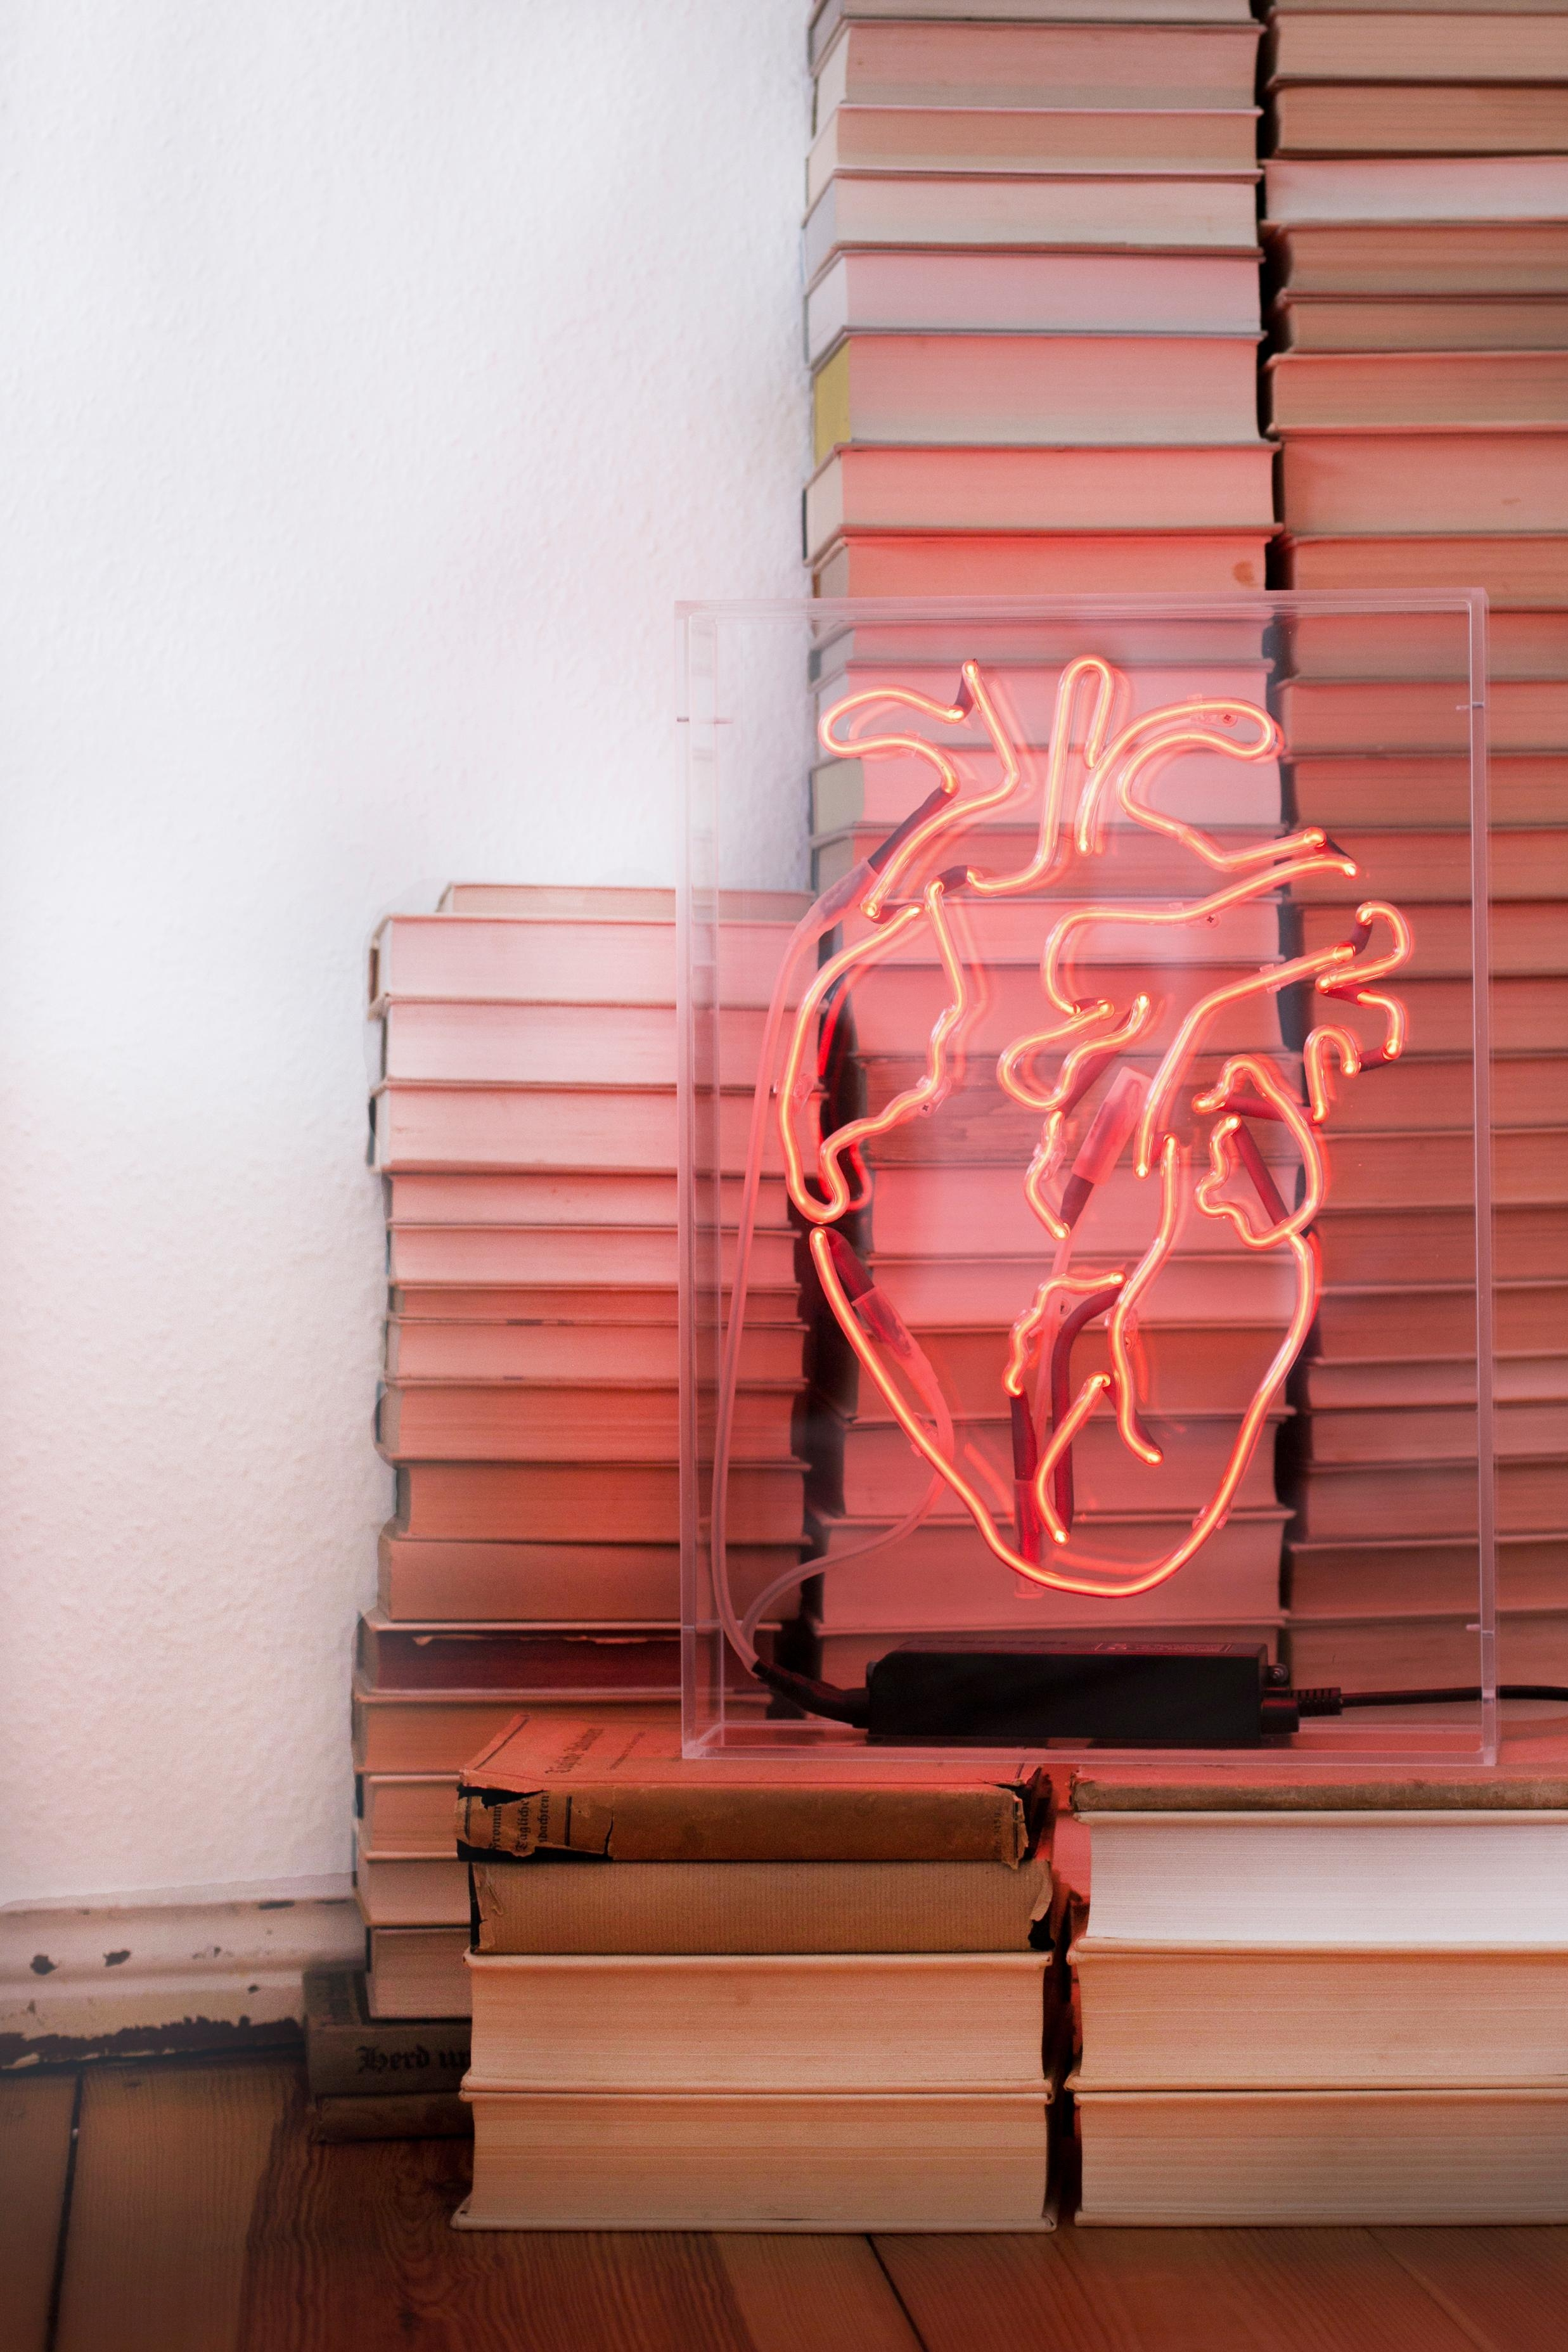 #neonsign #heart #love #details #interiordesign